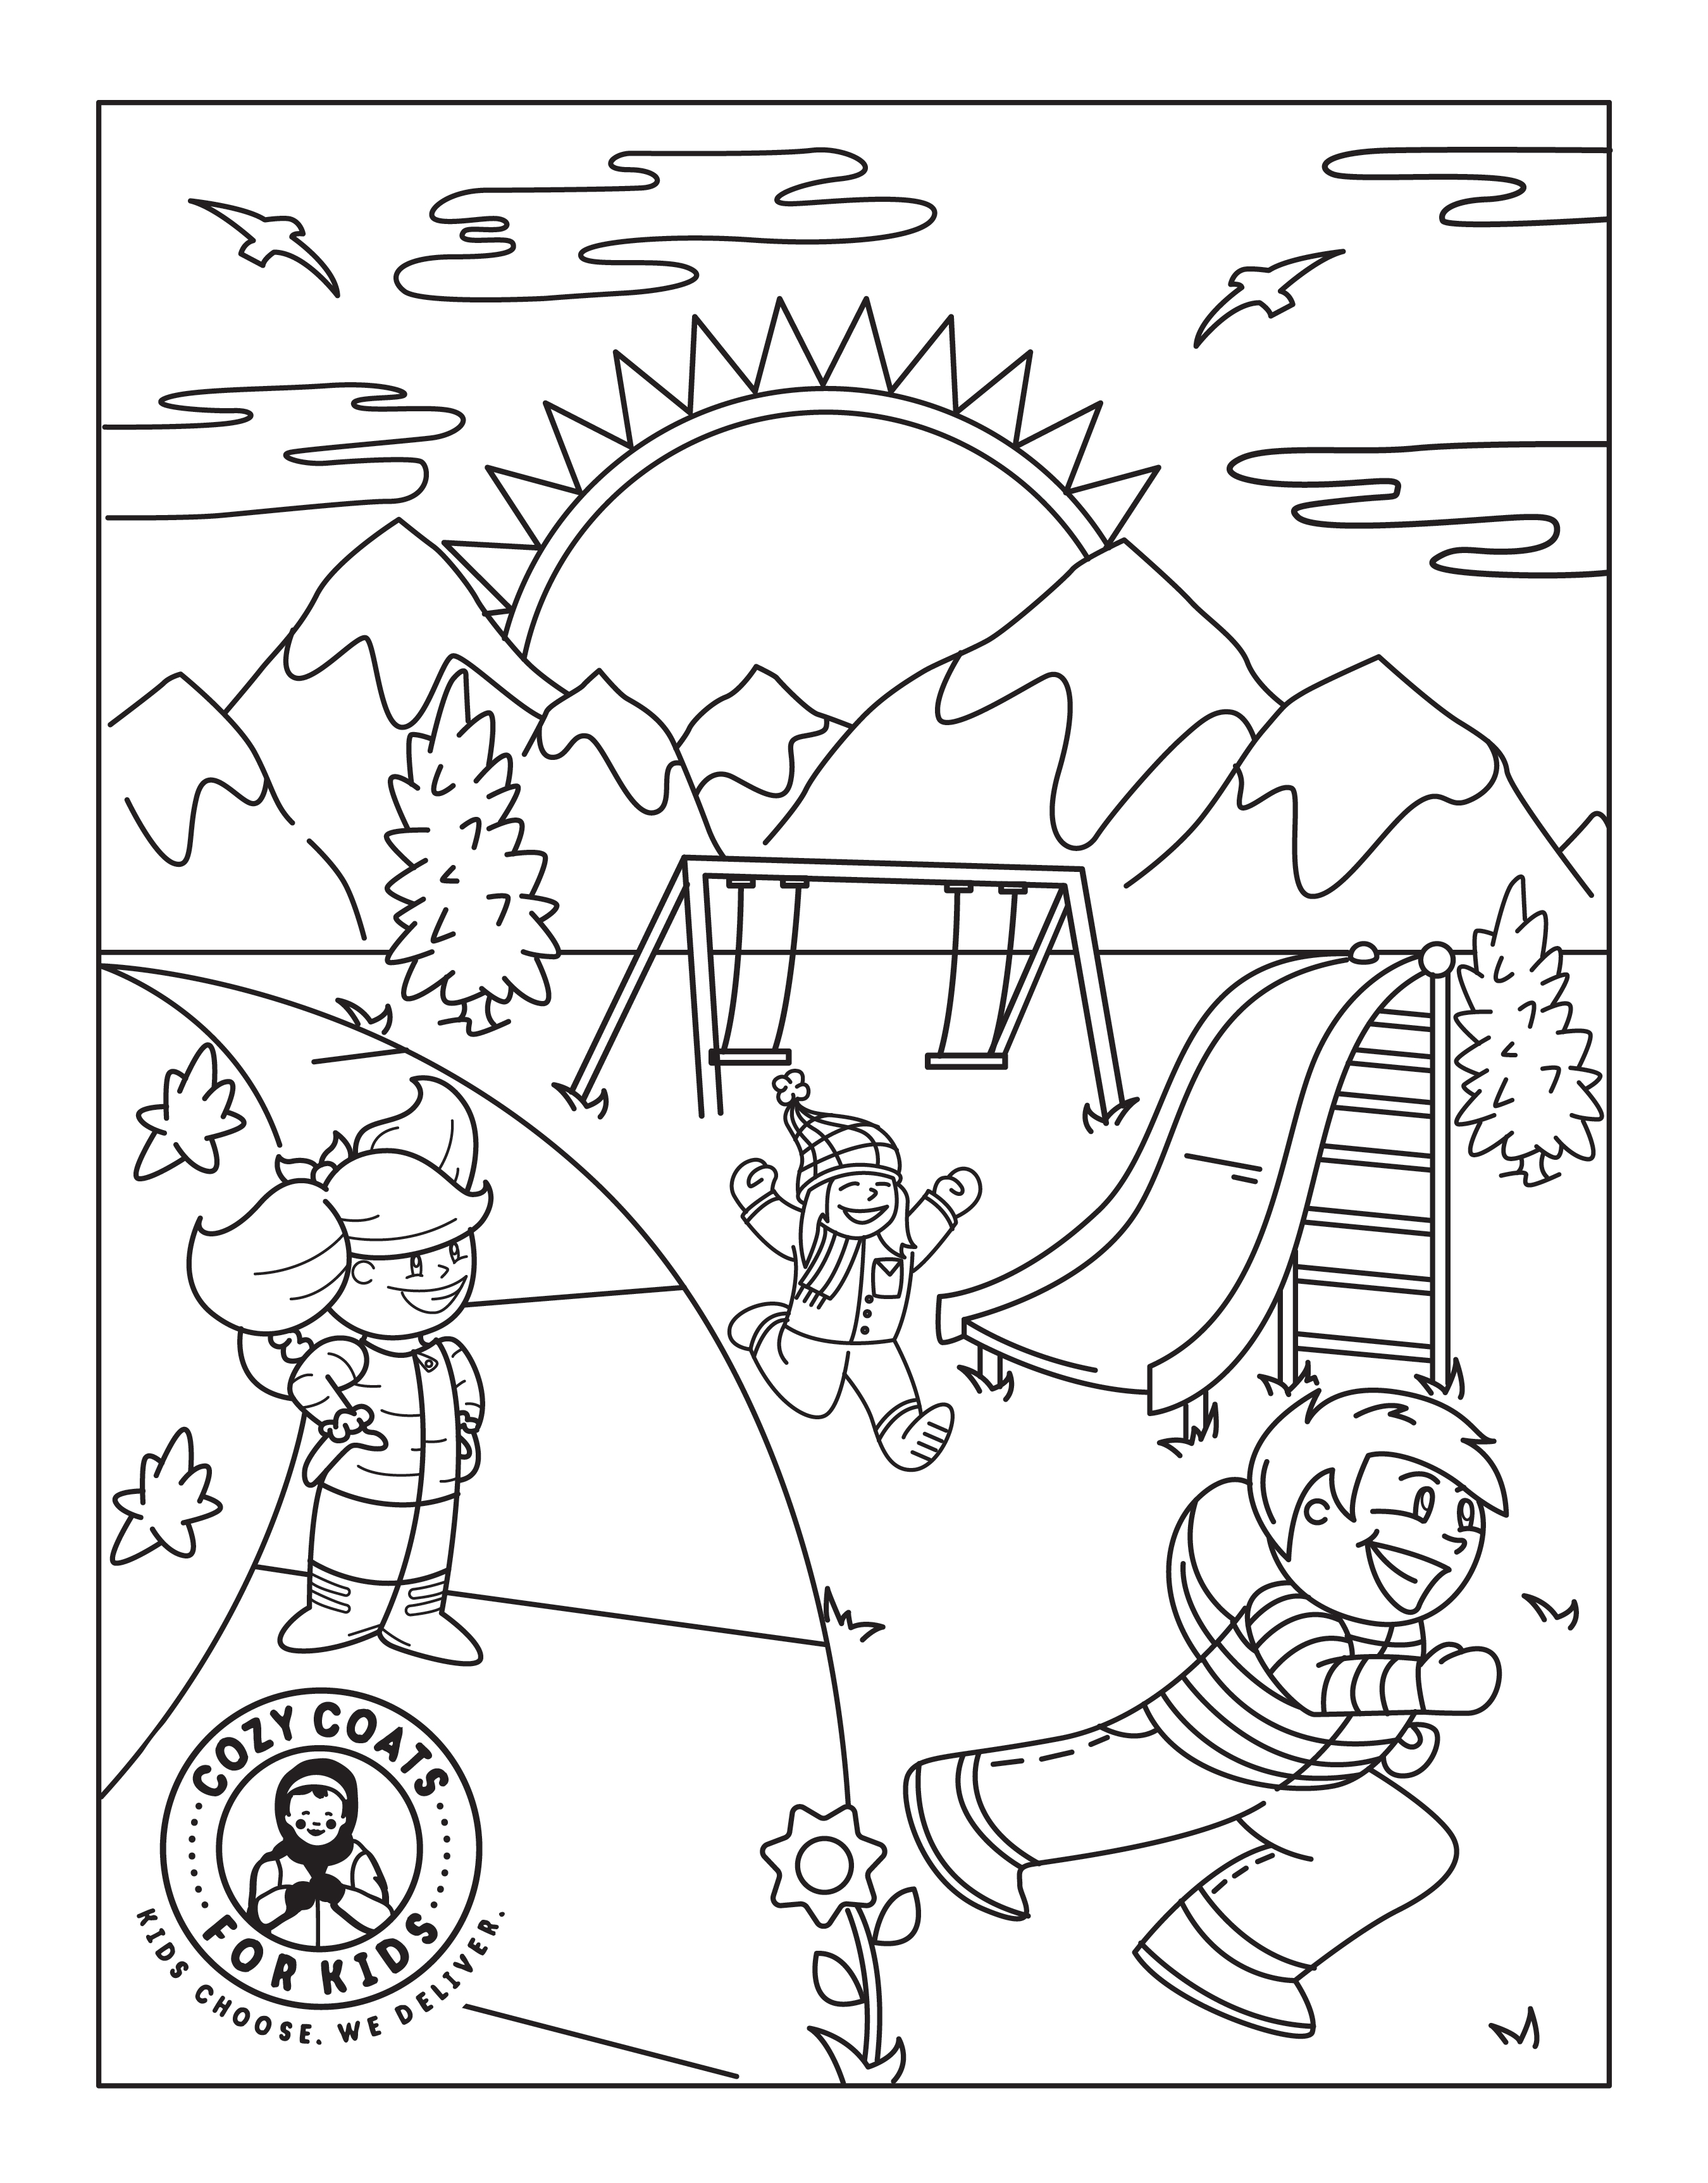 - Cozy Coats For Kids® Children's Coloring Sheet - Inspection